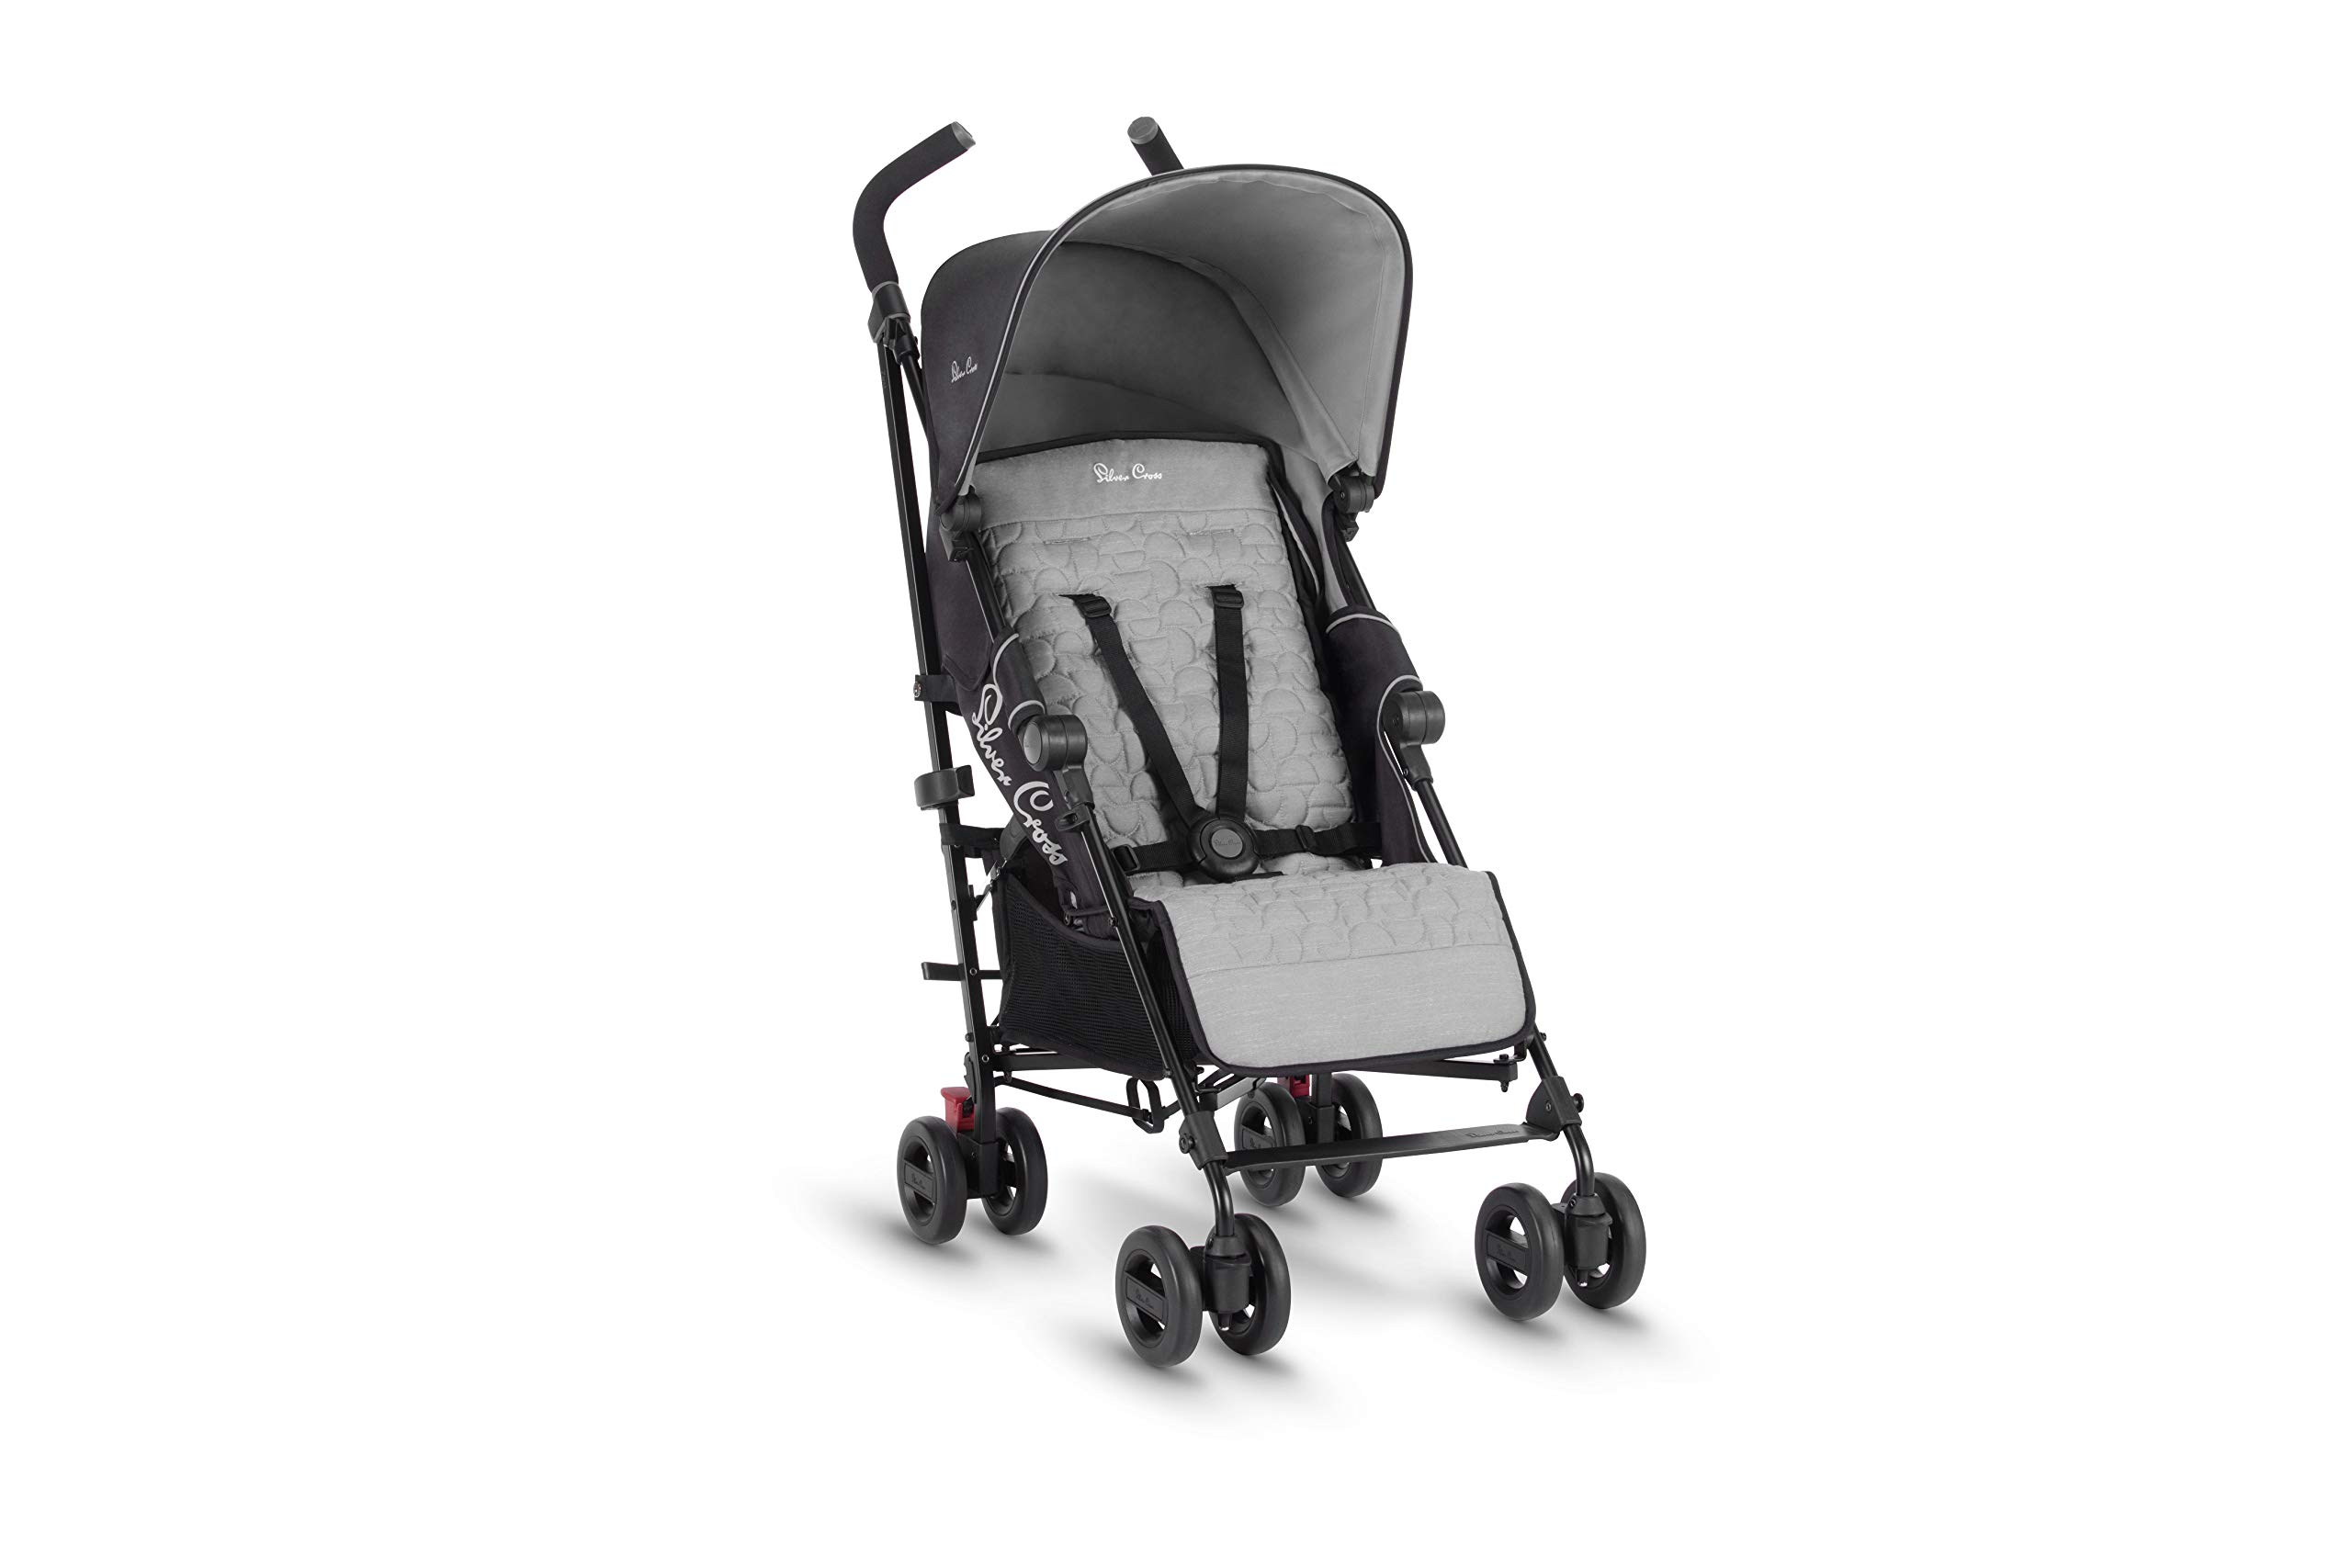 Silver Cross Zest Silver Silver Cross Ultra lightweight zest pushchair, weighing in at only 5.8kg, is suitable from birth up to 25kg It has a convenient one-hand fold, while the compact design makes it easy to store The fully lie-flat recline is best in its class 3